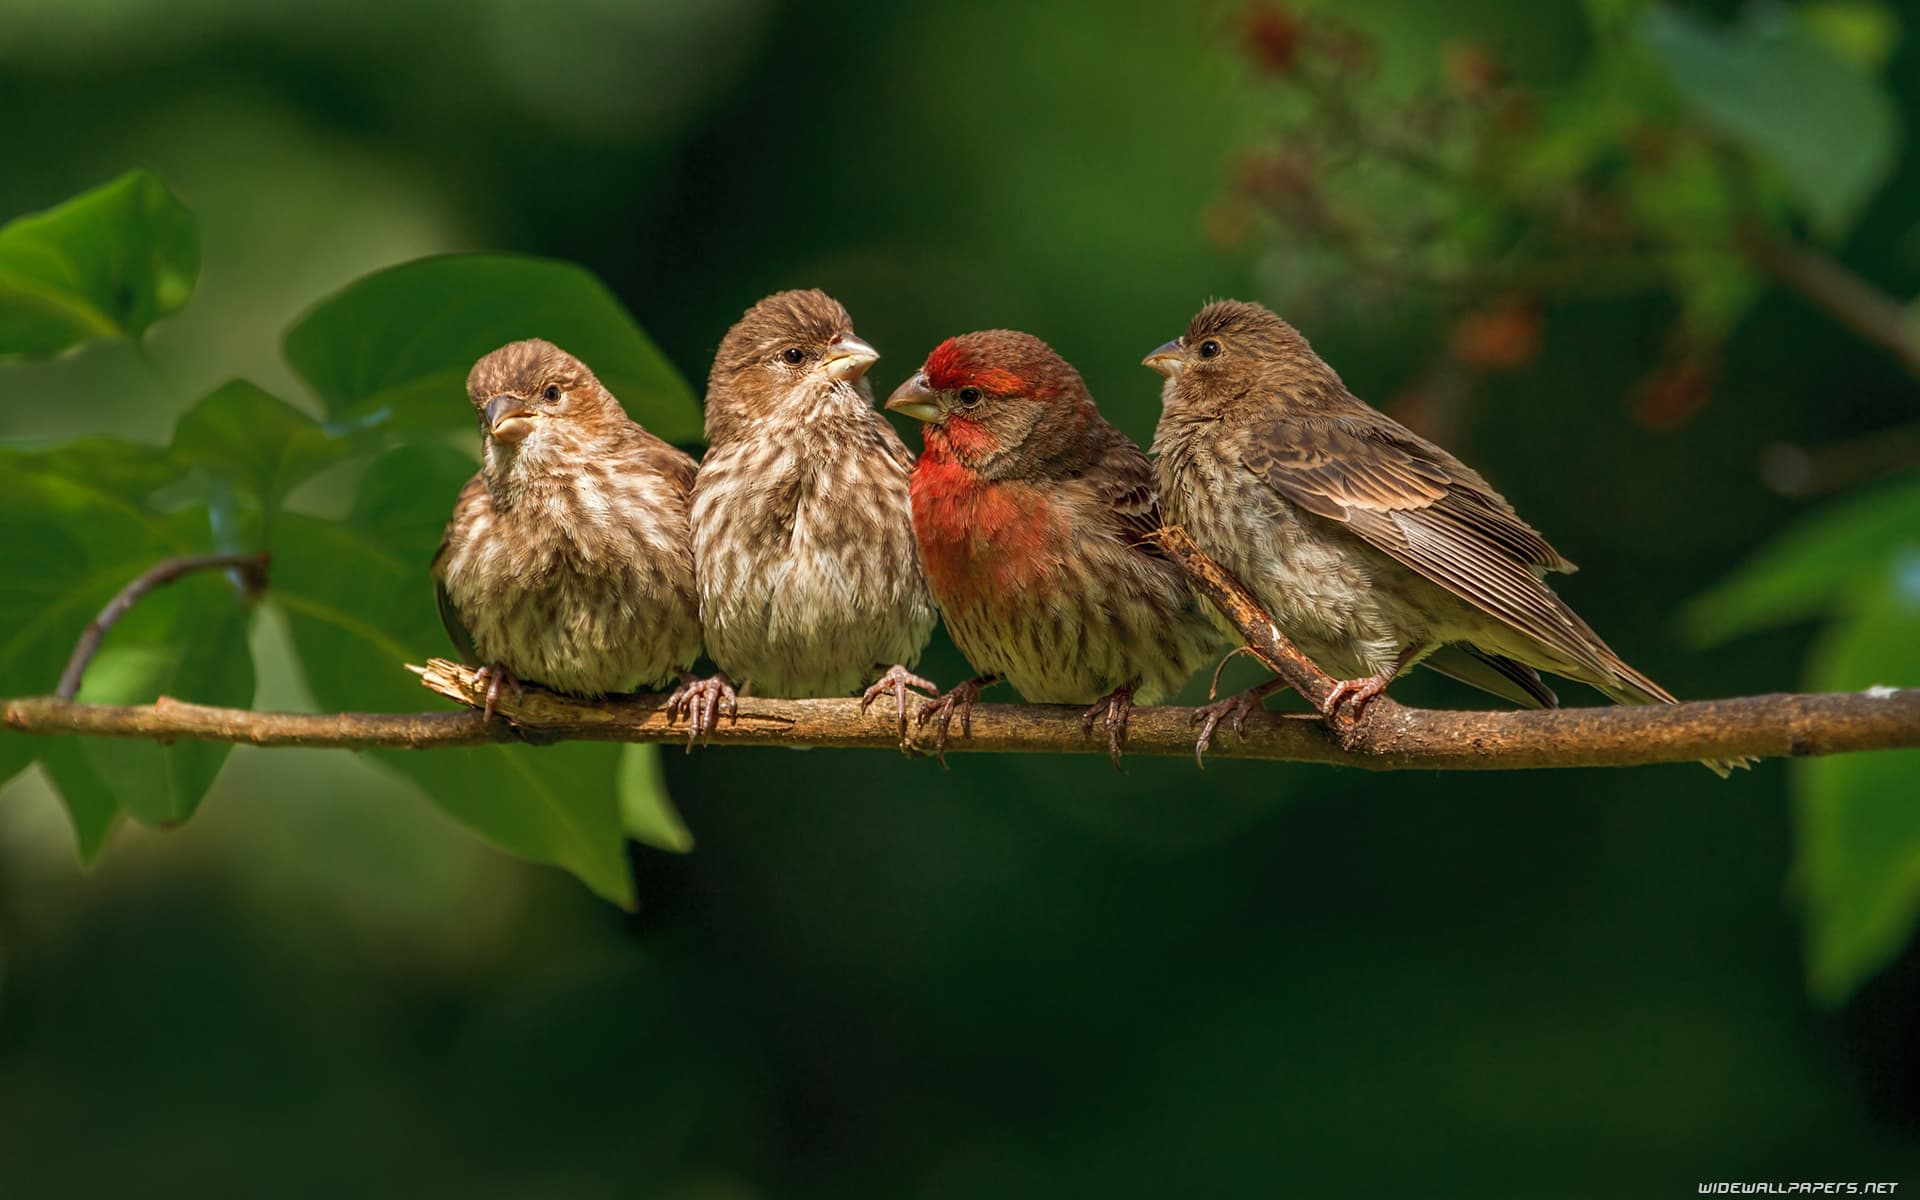 FROM SOUND POLLUTION BIRDS LIFE GET EFFECTED